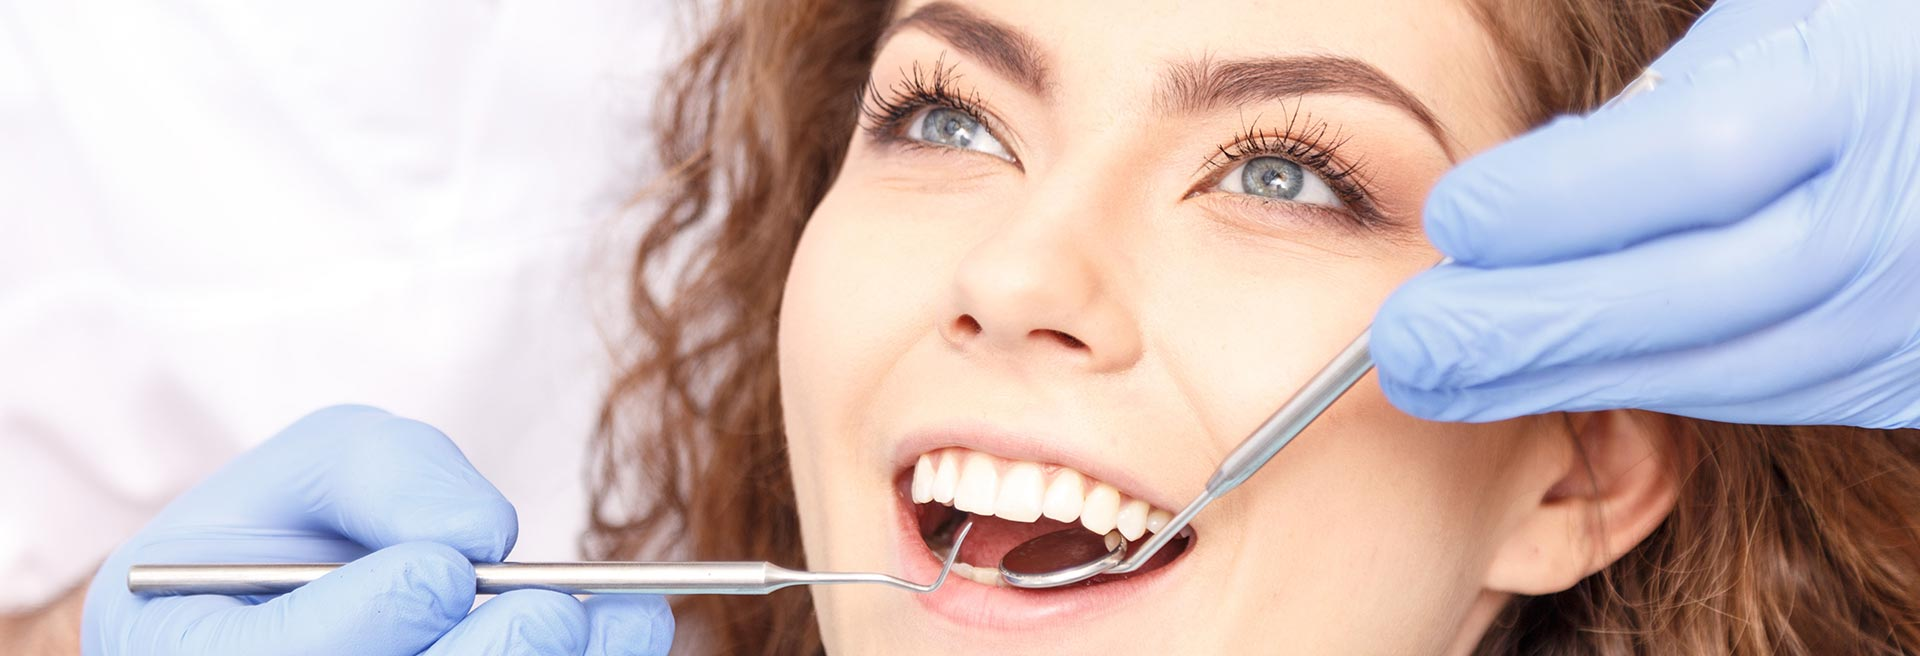 Cosmetic Dentistry in Ballard WA, Freemont WA, Greenwood WA, Seattle